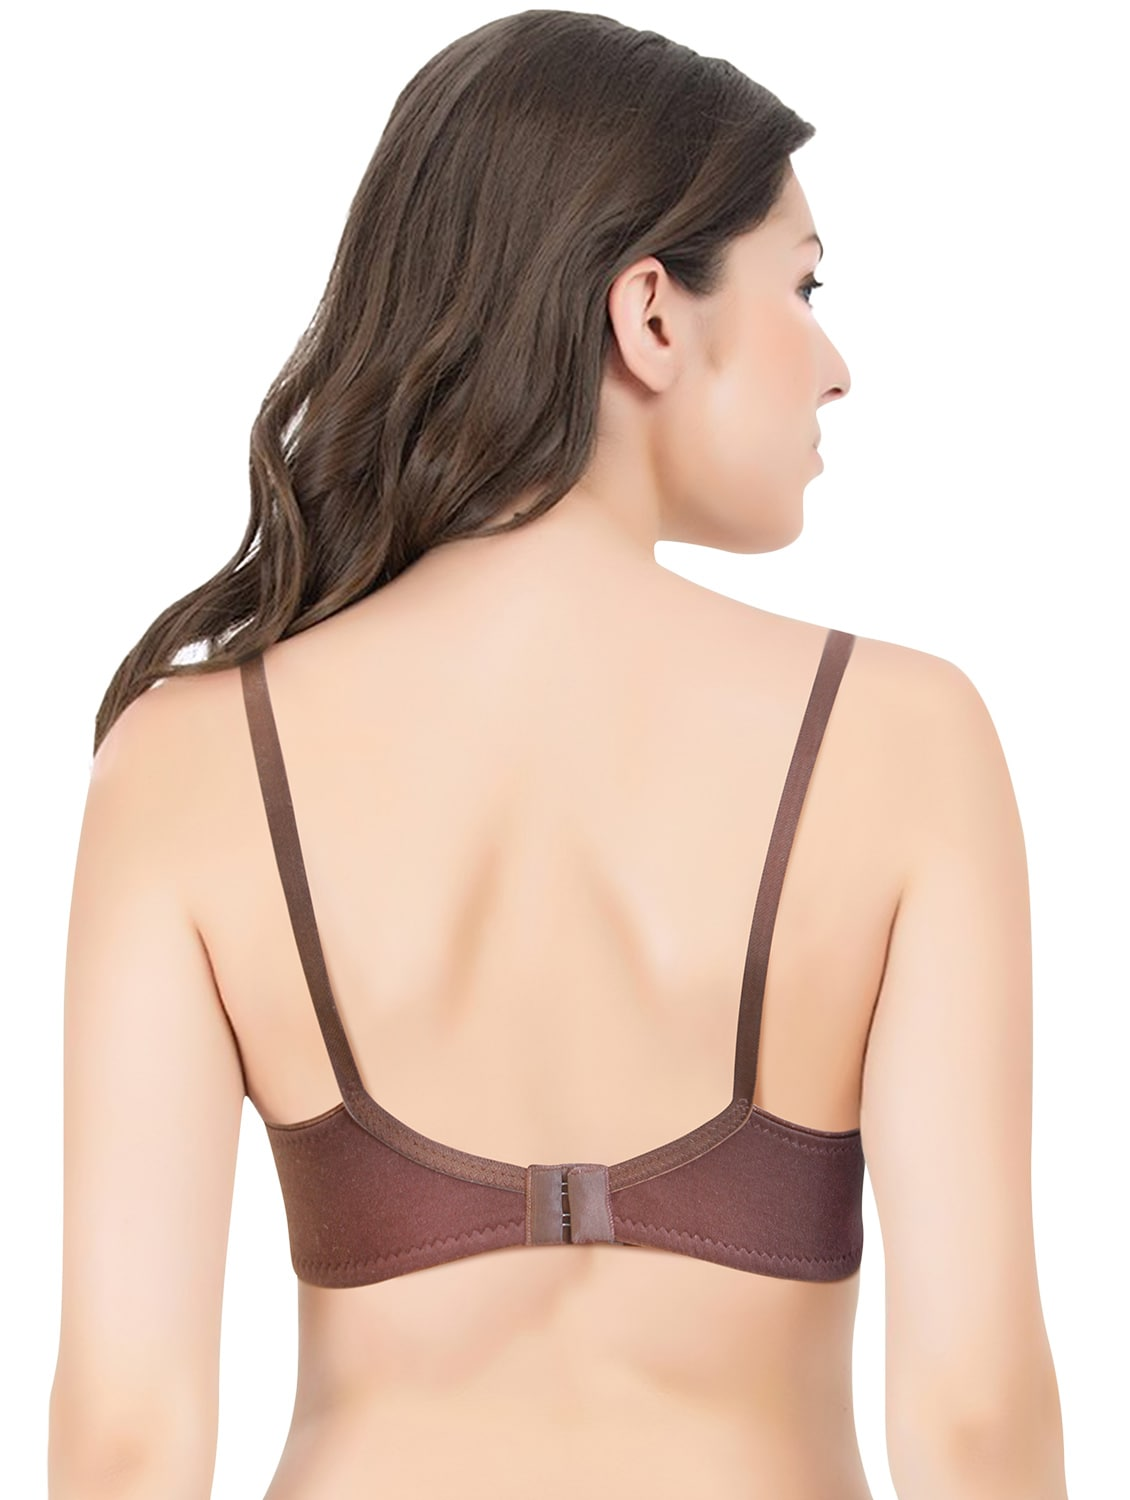 0ff3fec1e4b5 Buy Set Of 2 Multi Colored Cotton Bras for Women from Libra for ₹410 at 0%  off | 2019 Limeroad.com